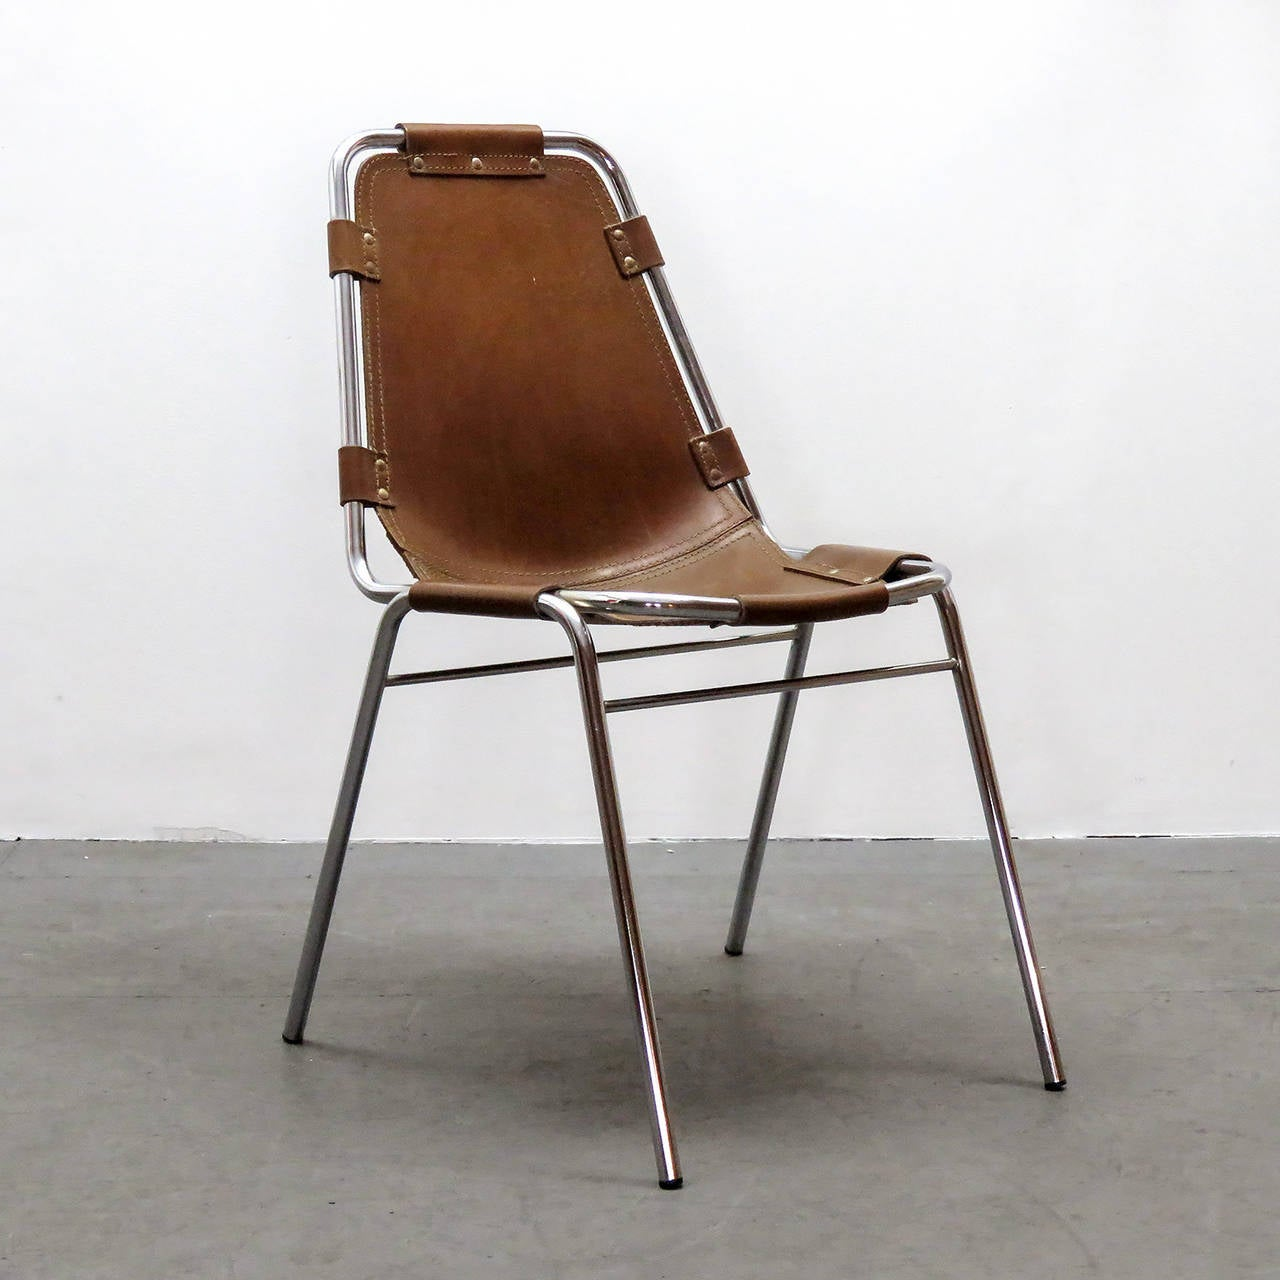 Iconic leather and metal side chair by Charlotte Perriand for the Ski resort Les Arcs in 1960, with chrome tubular frame in great condition and high quality thick leather seat with a fantastic patina to the leather.